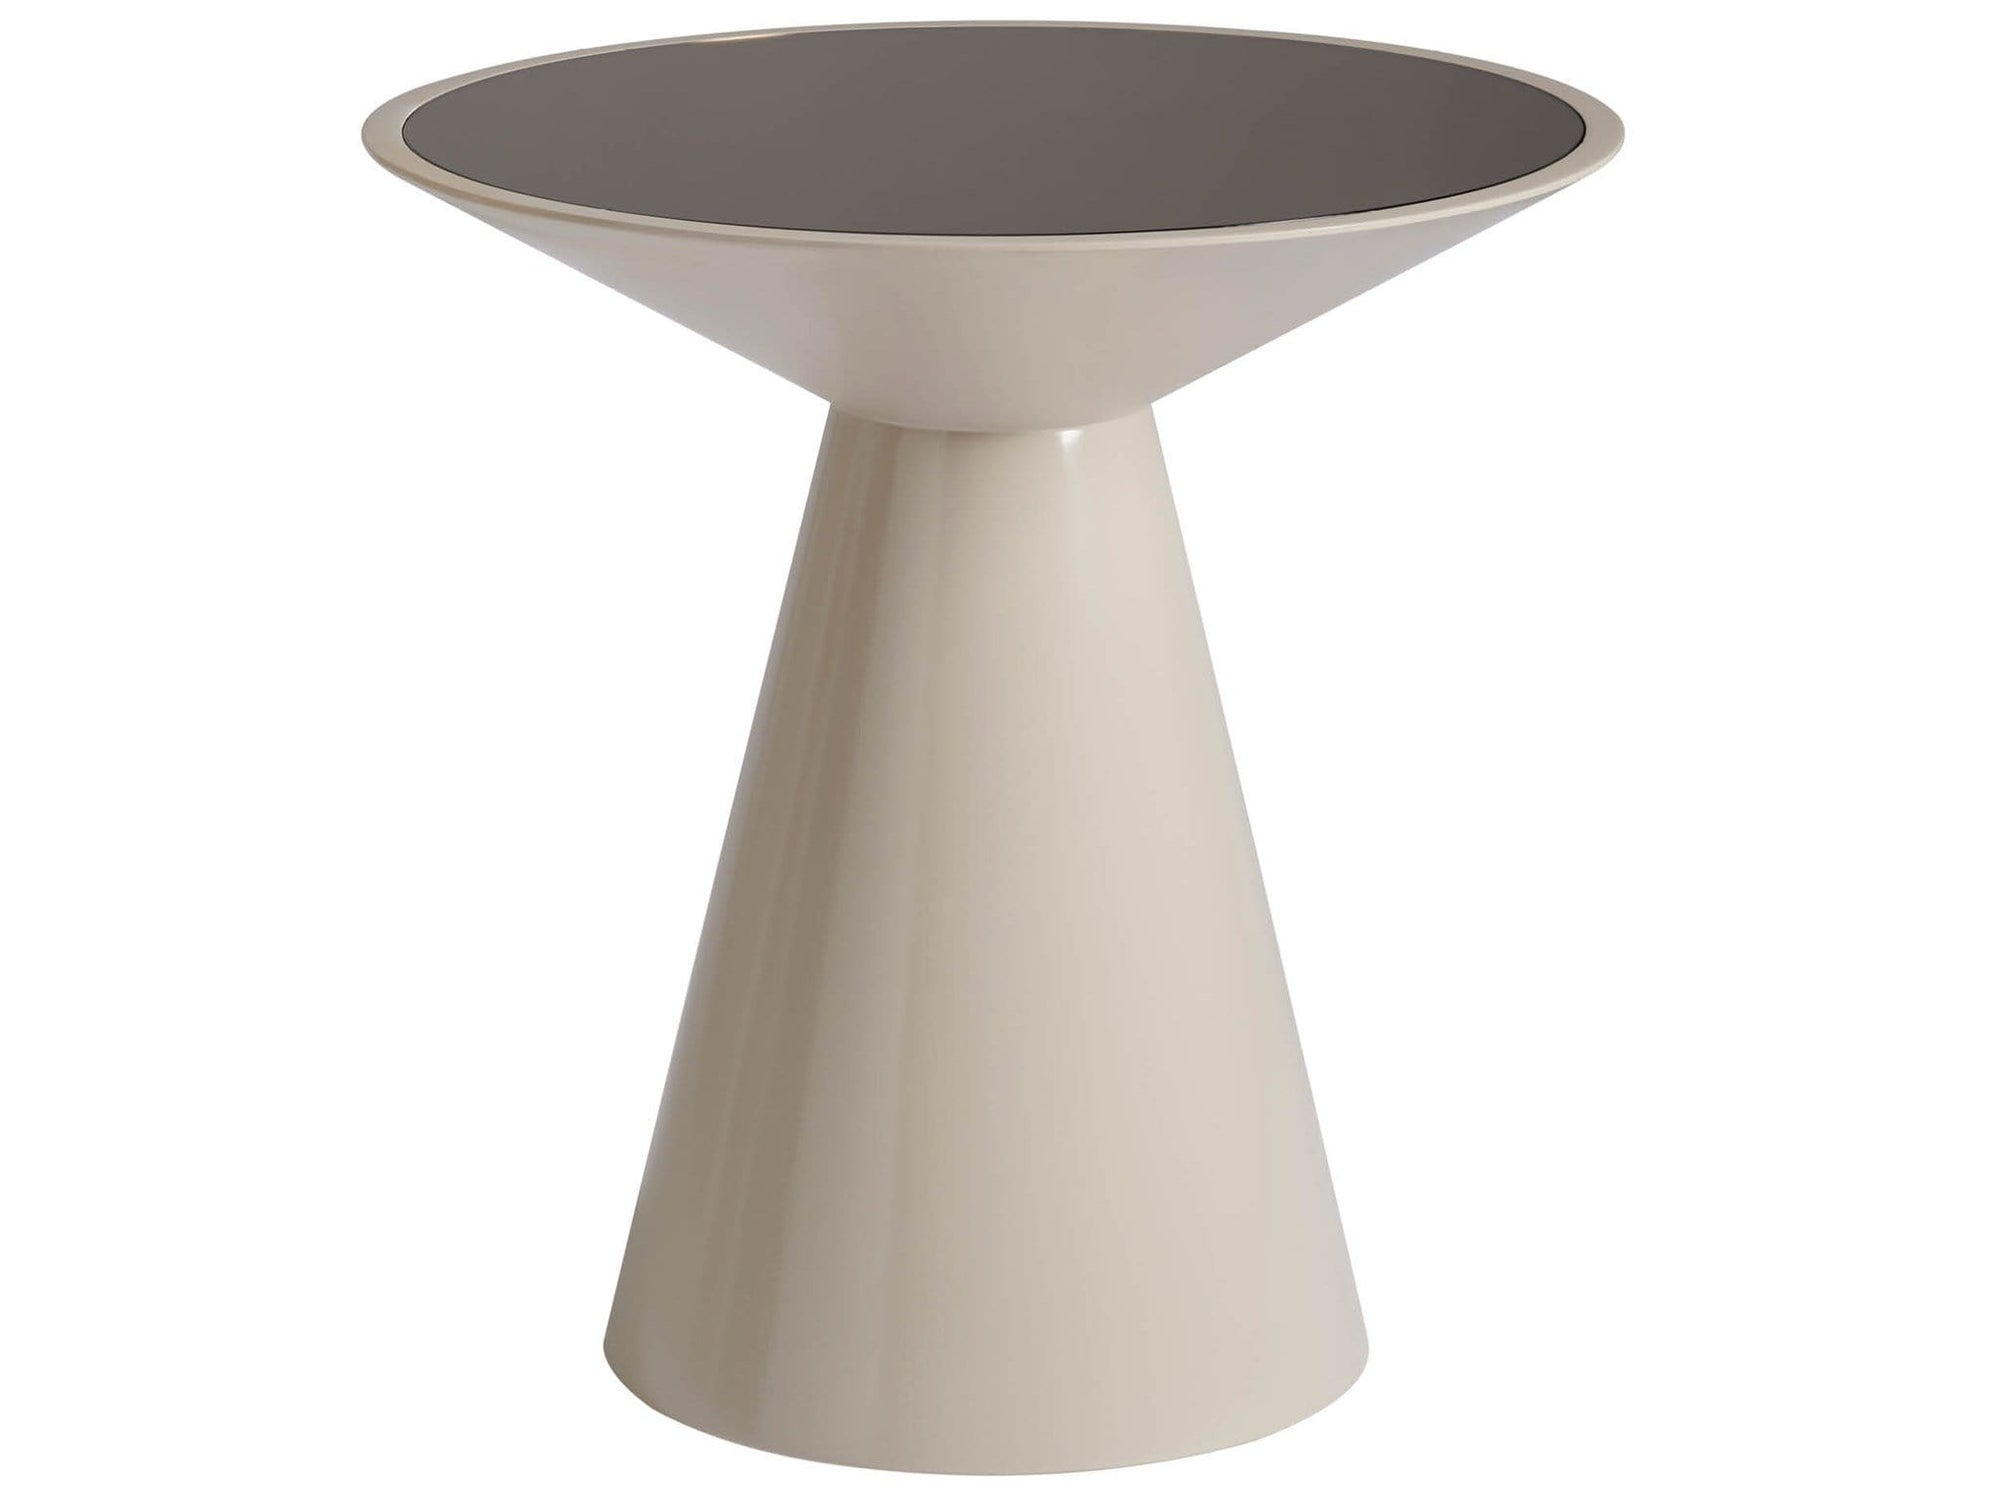 Alchemy Living Alchemy Living Urbain Cairo Round Accent Table - Beige and Gray 807223